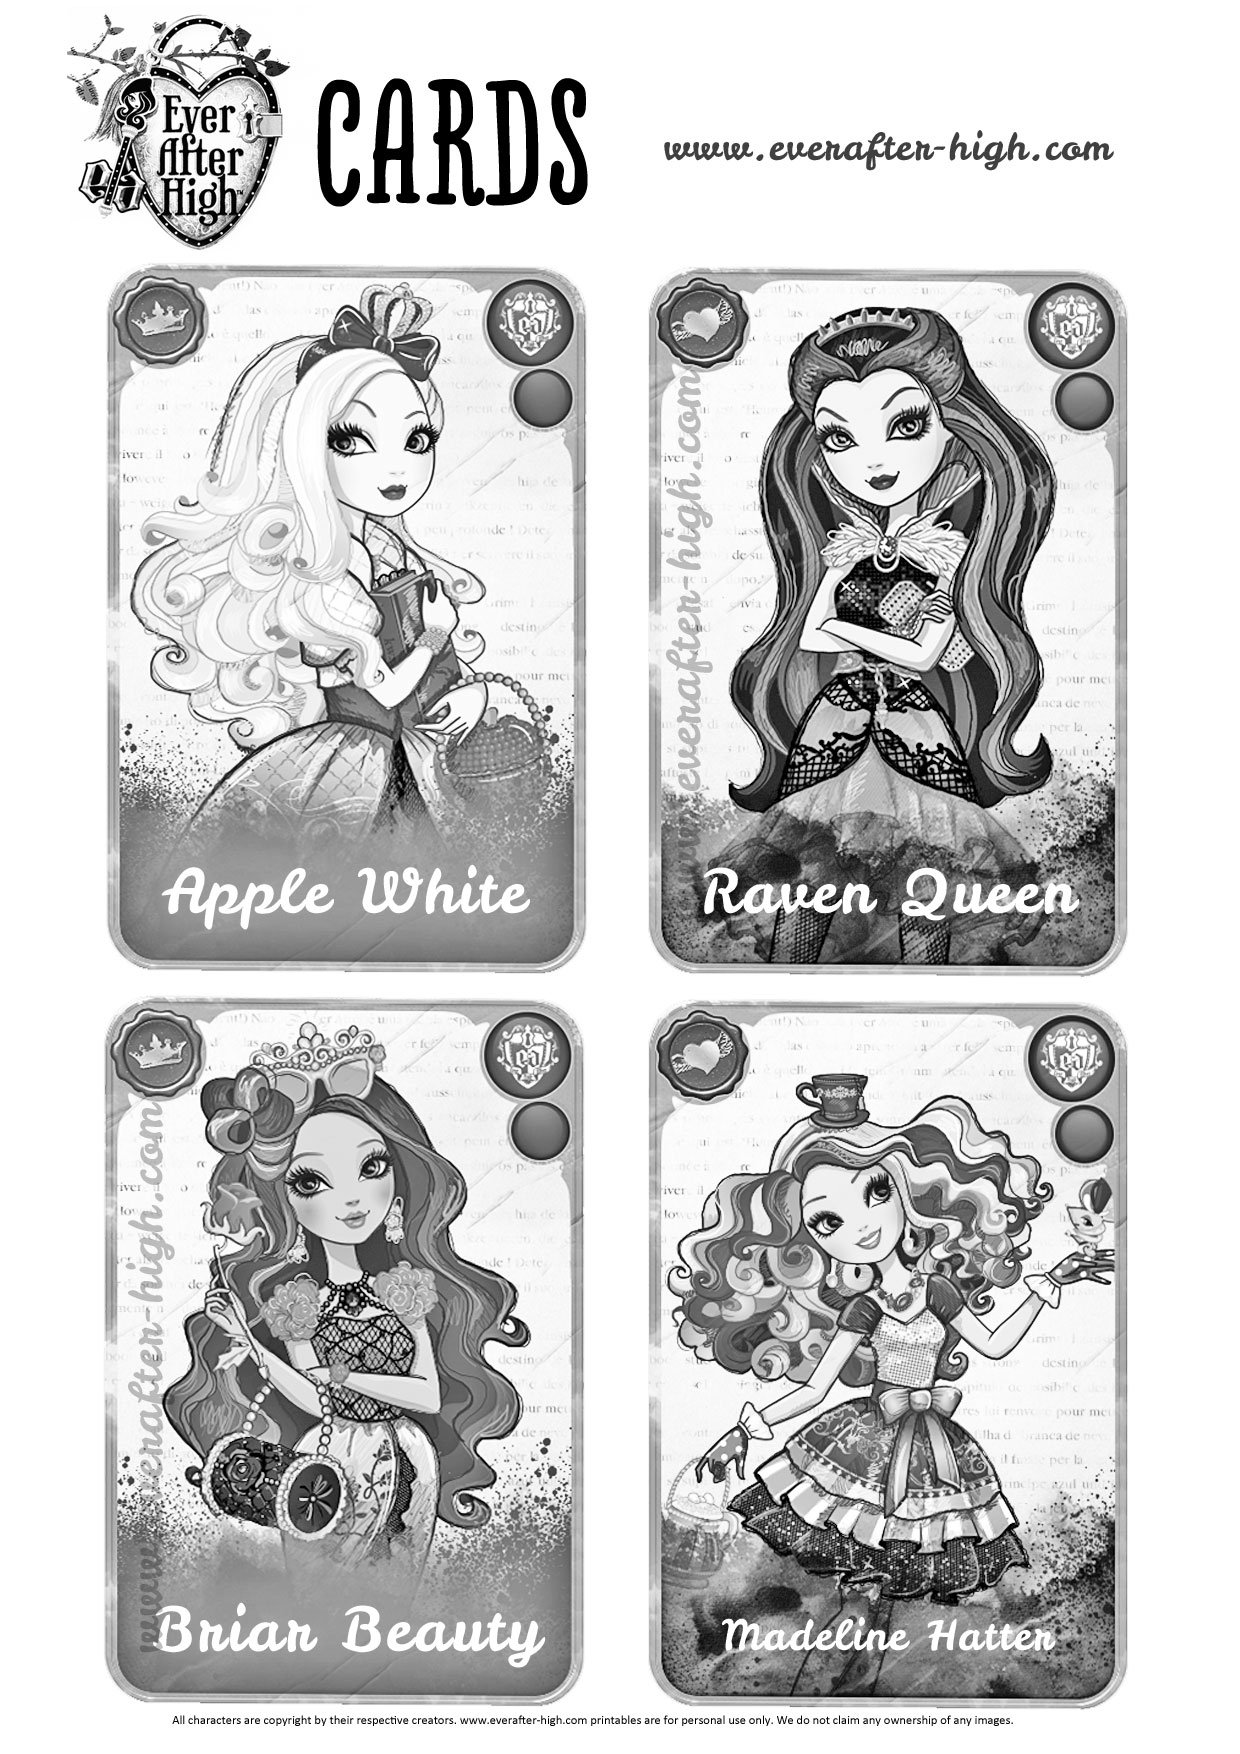 Ever After High character cards